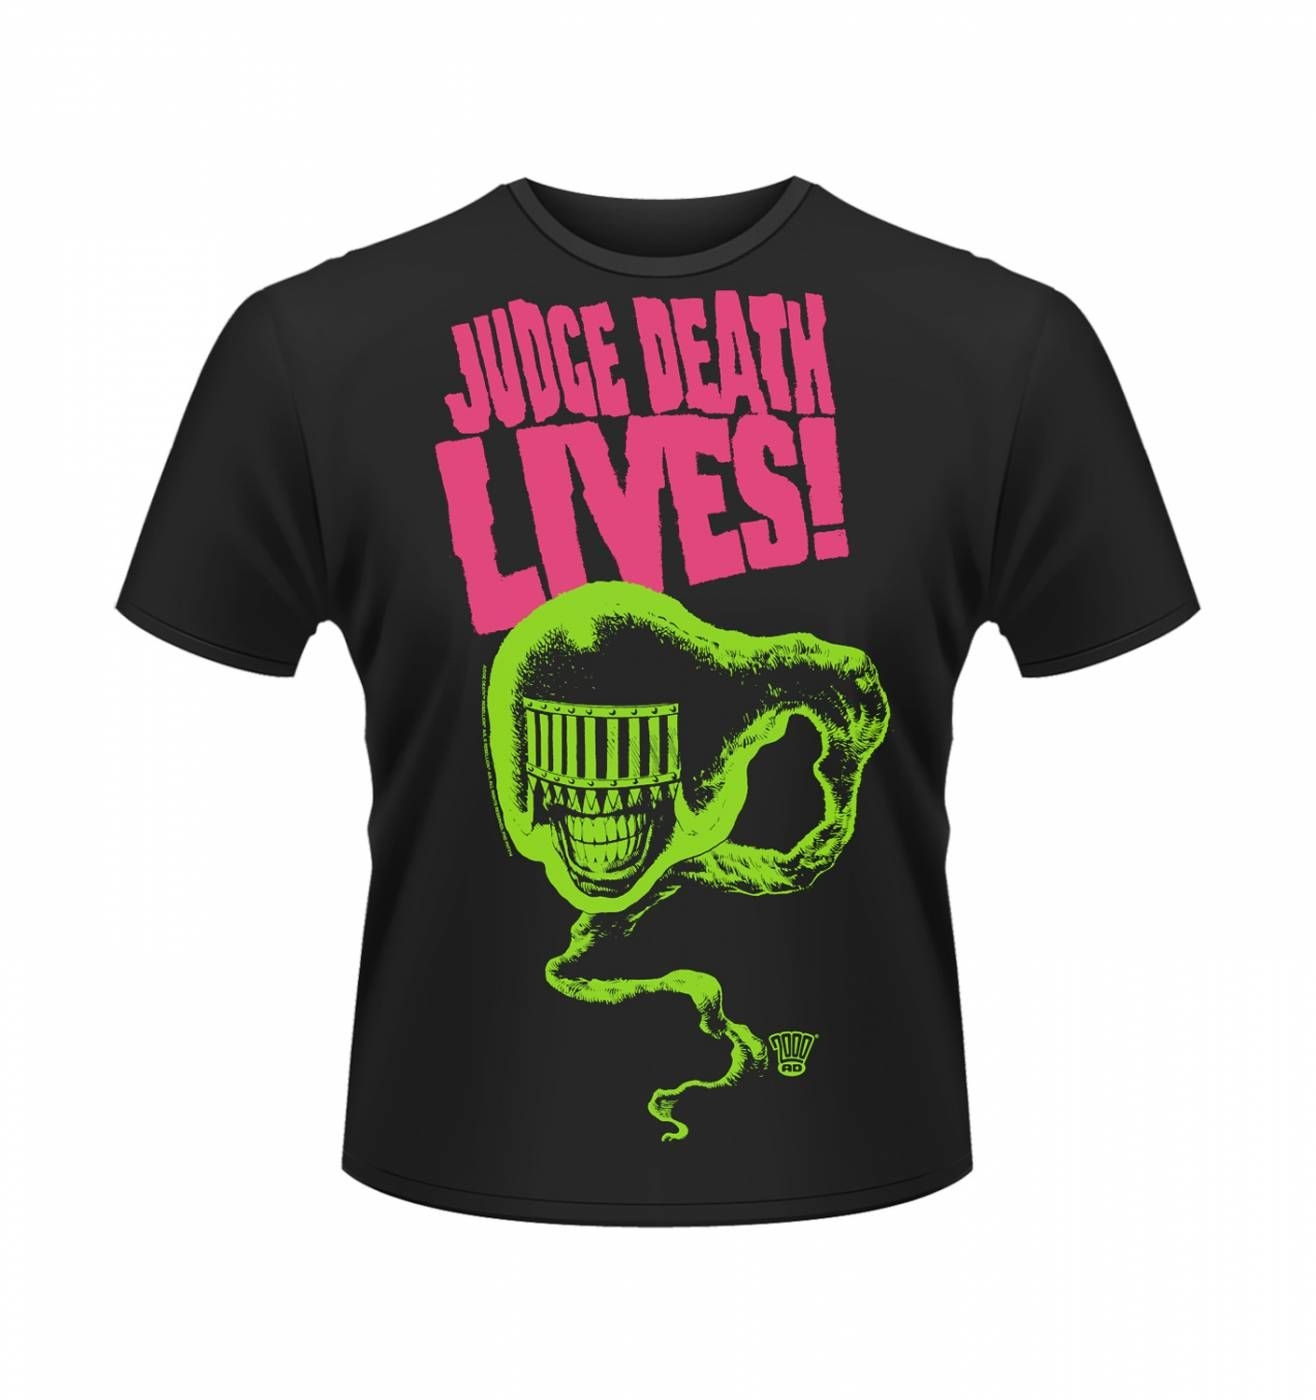 OFFICIAL 2000AD Judge Death Lives! t-shirt